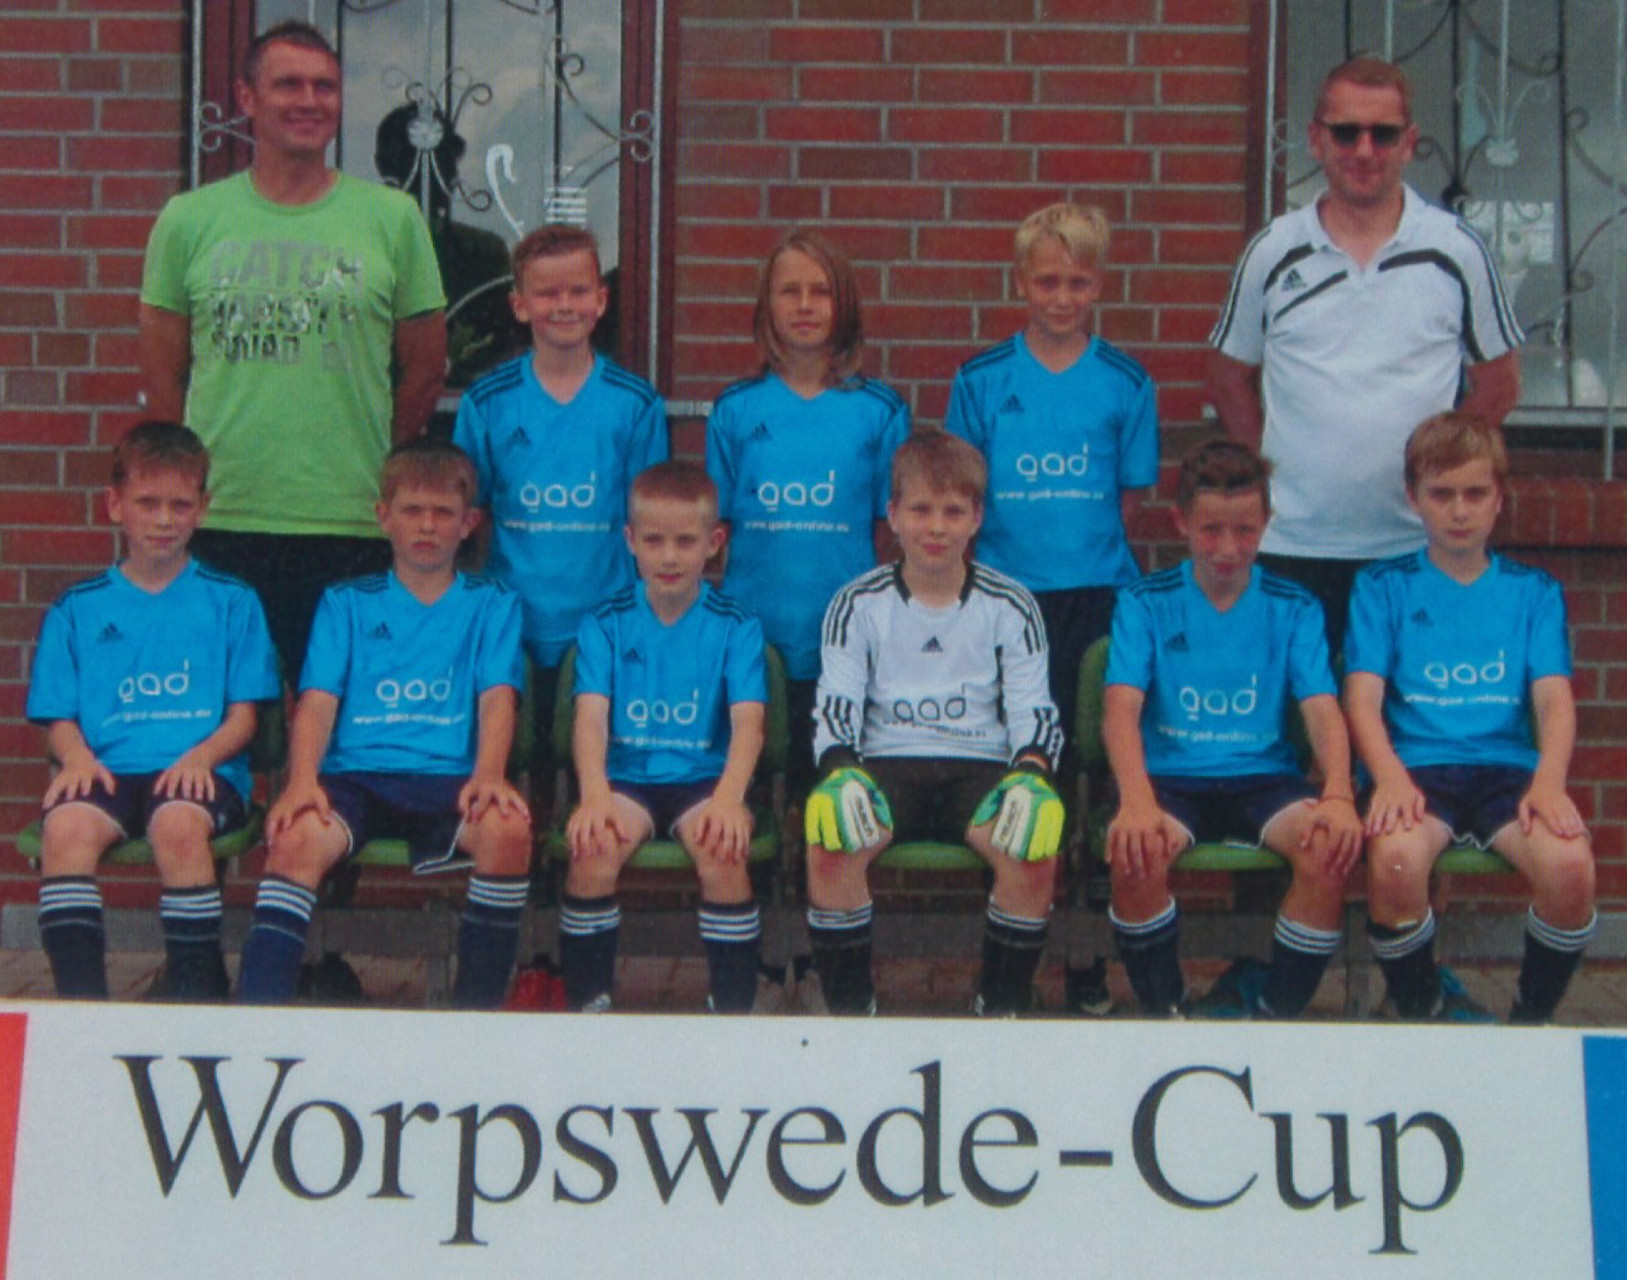 JSG U12-1 Worpswede Cup 2015